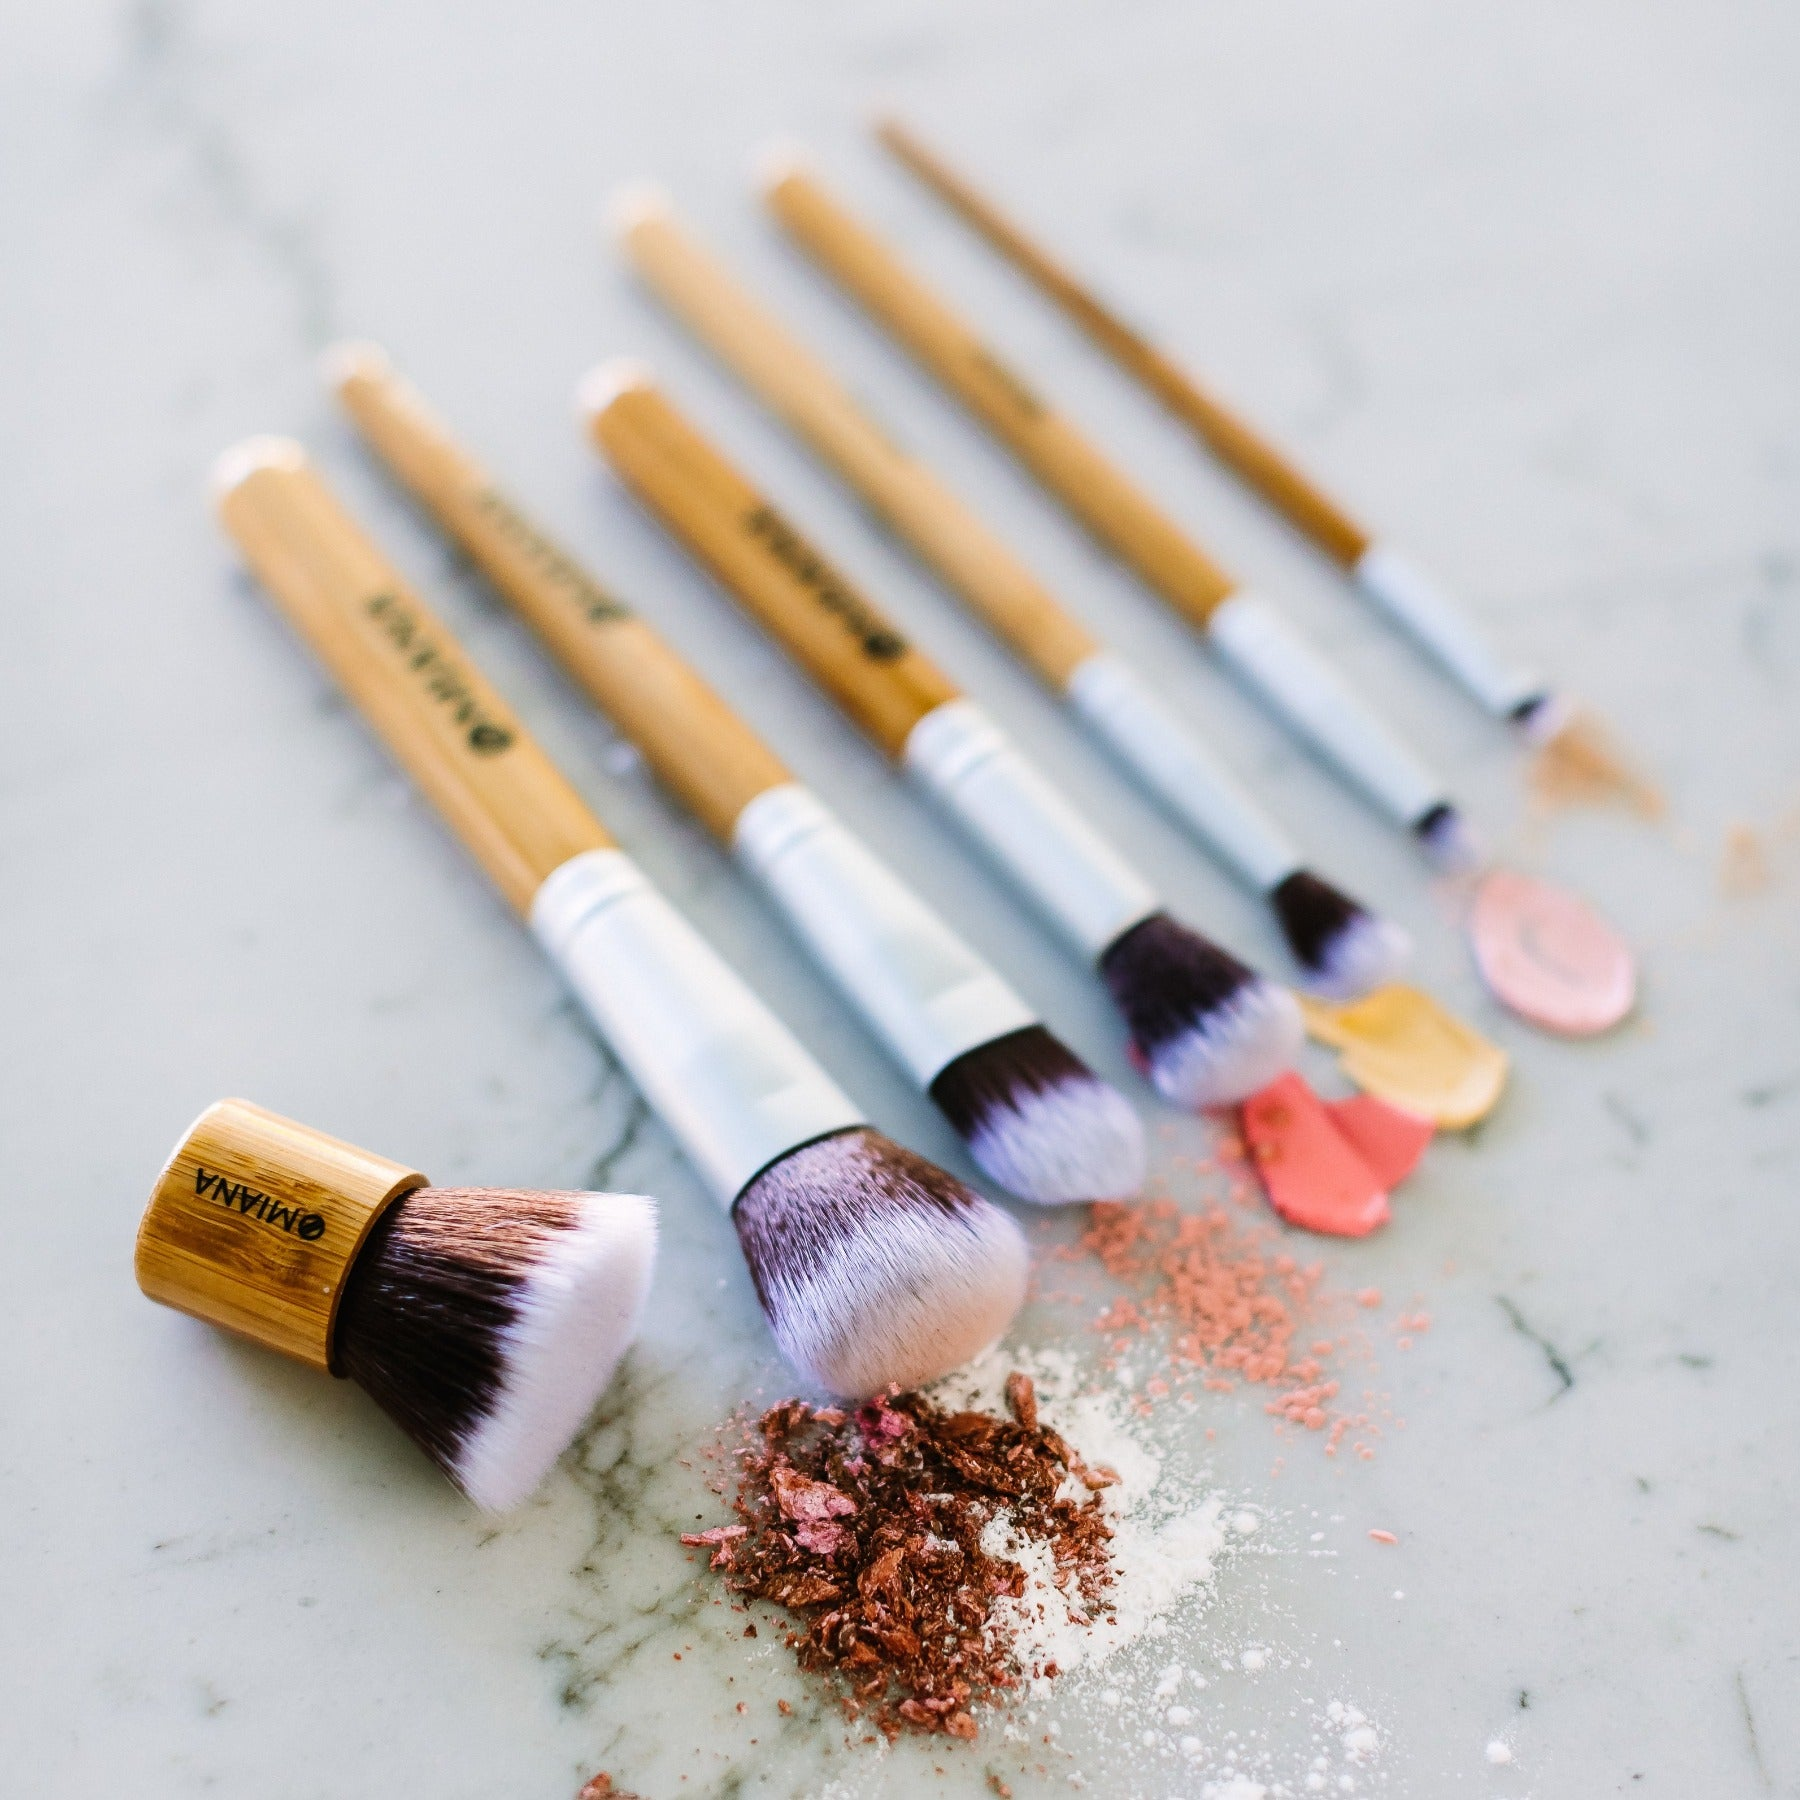 Synthetic Makeup Brushes for Clean Natural Makeup